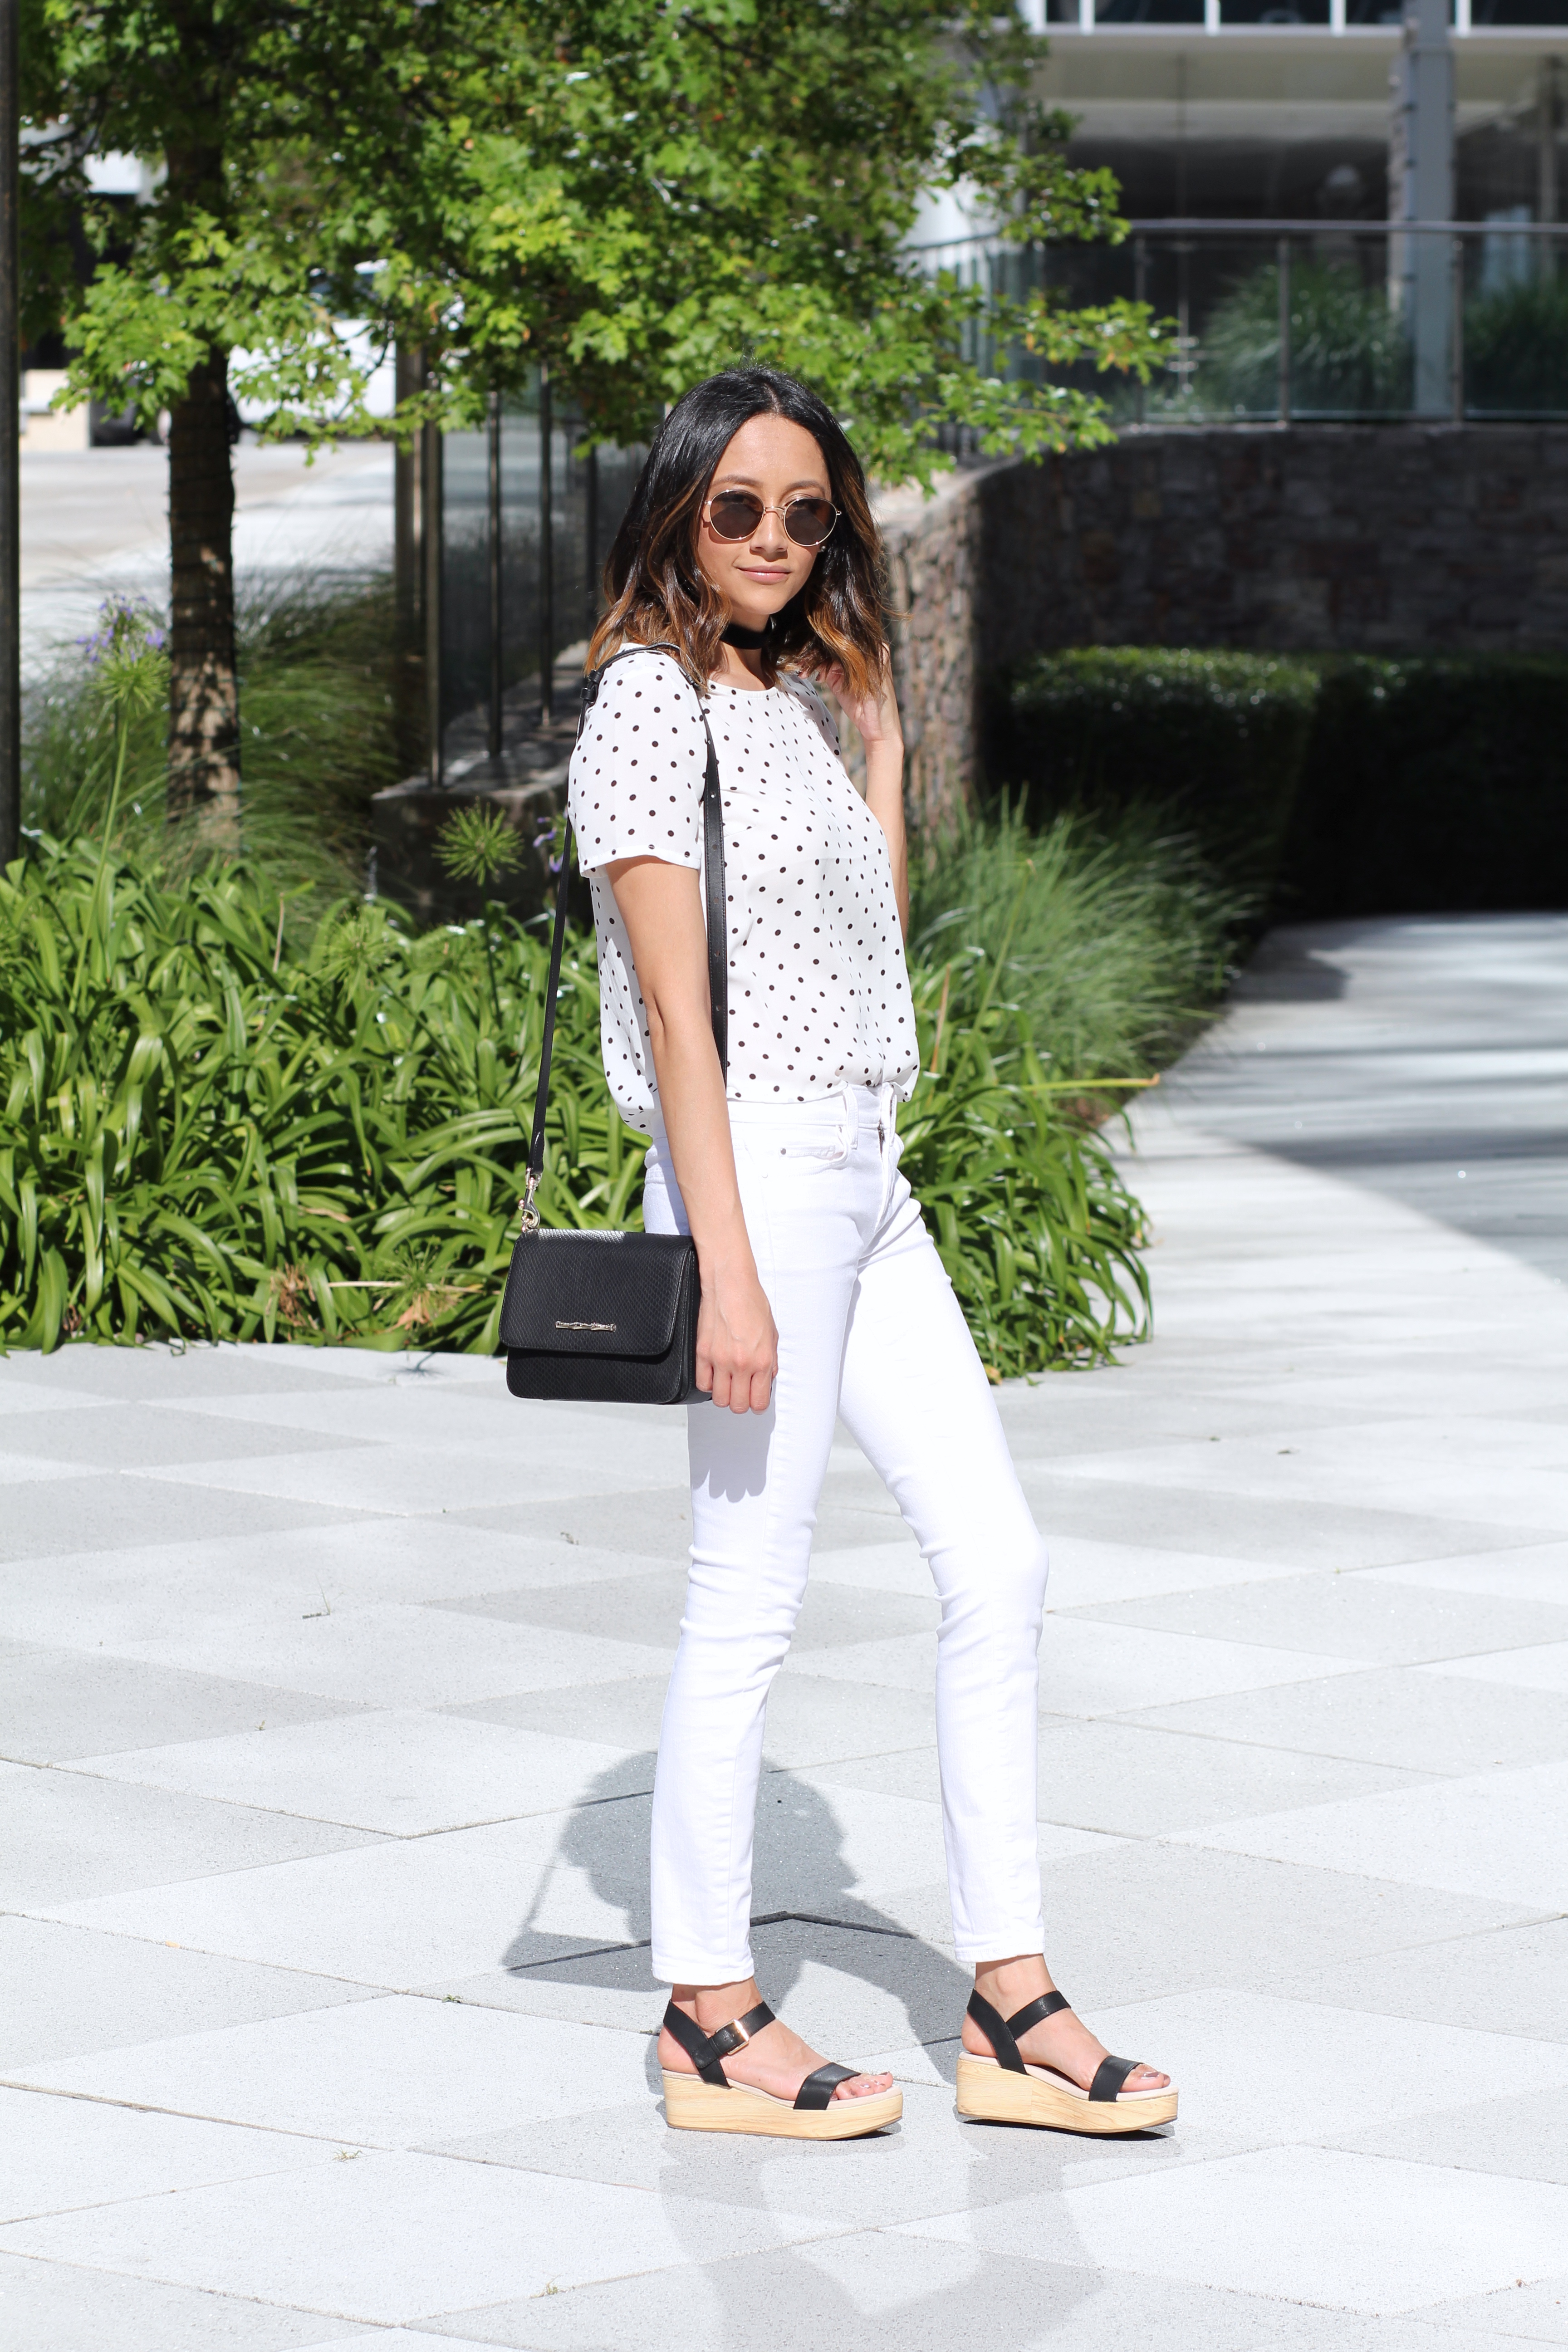 Simple Platform Sandals | Black Platform Sandals | White Summer Look | Minimal Chic